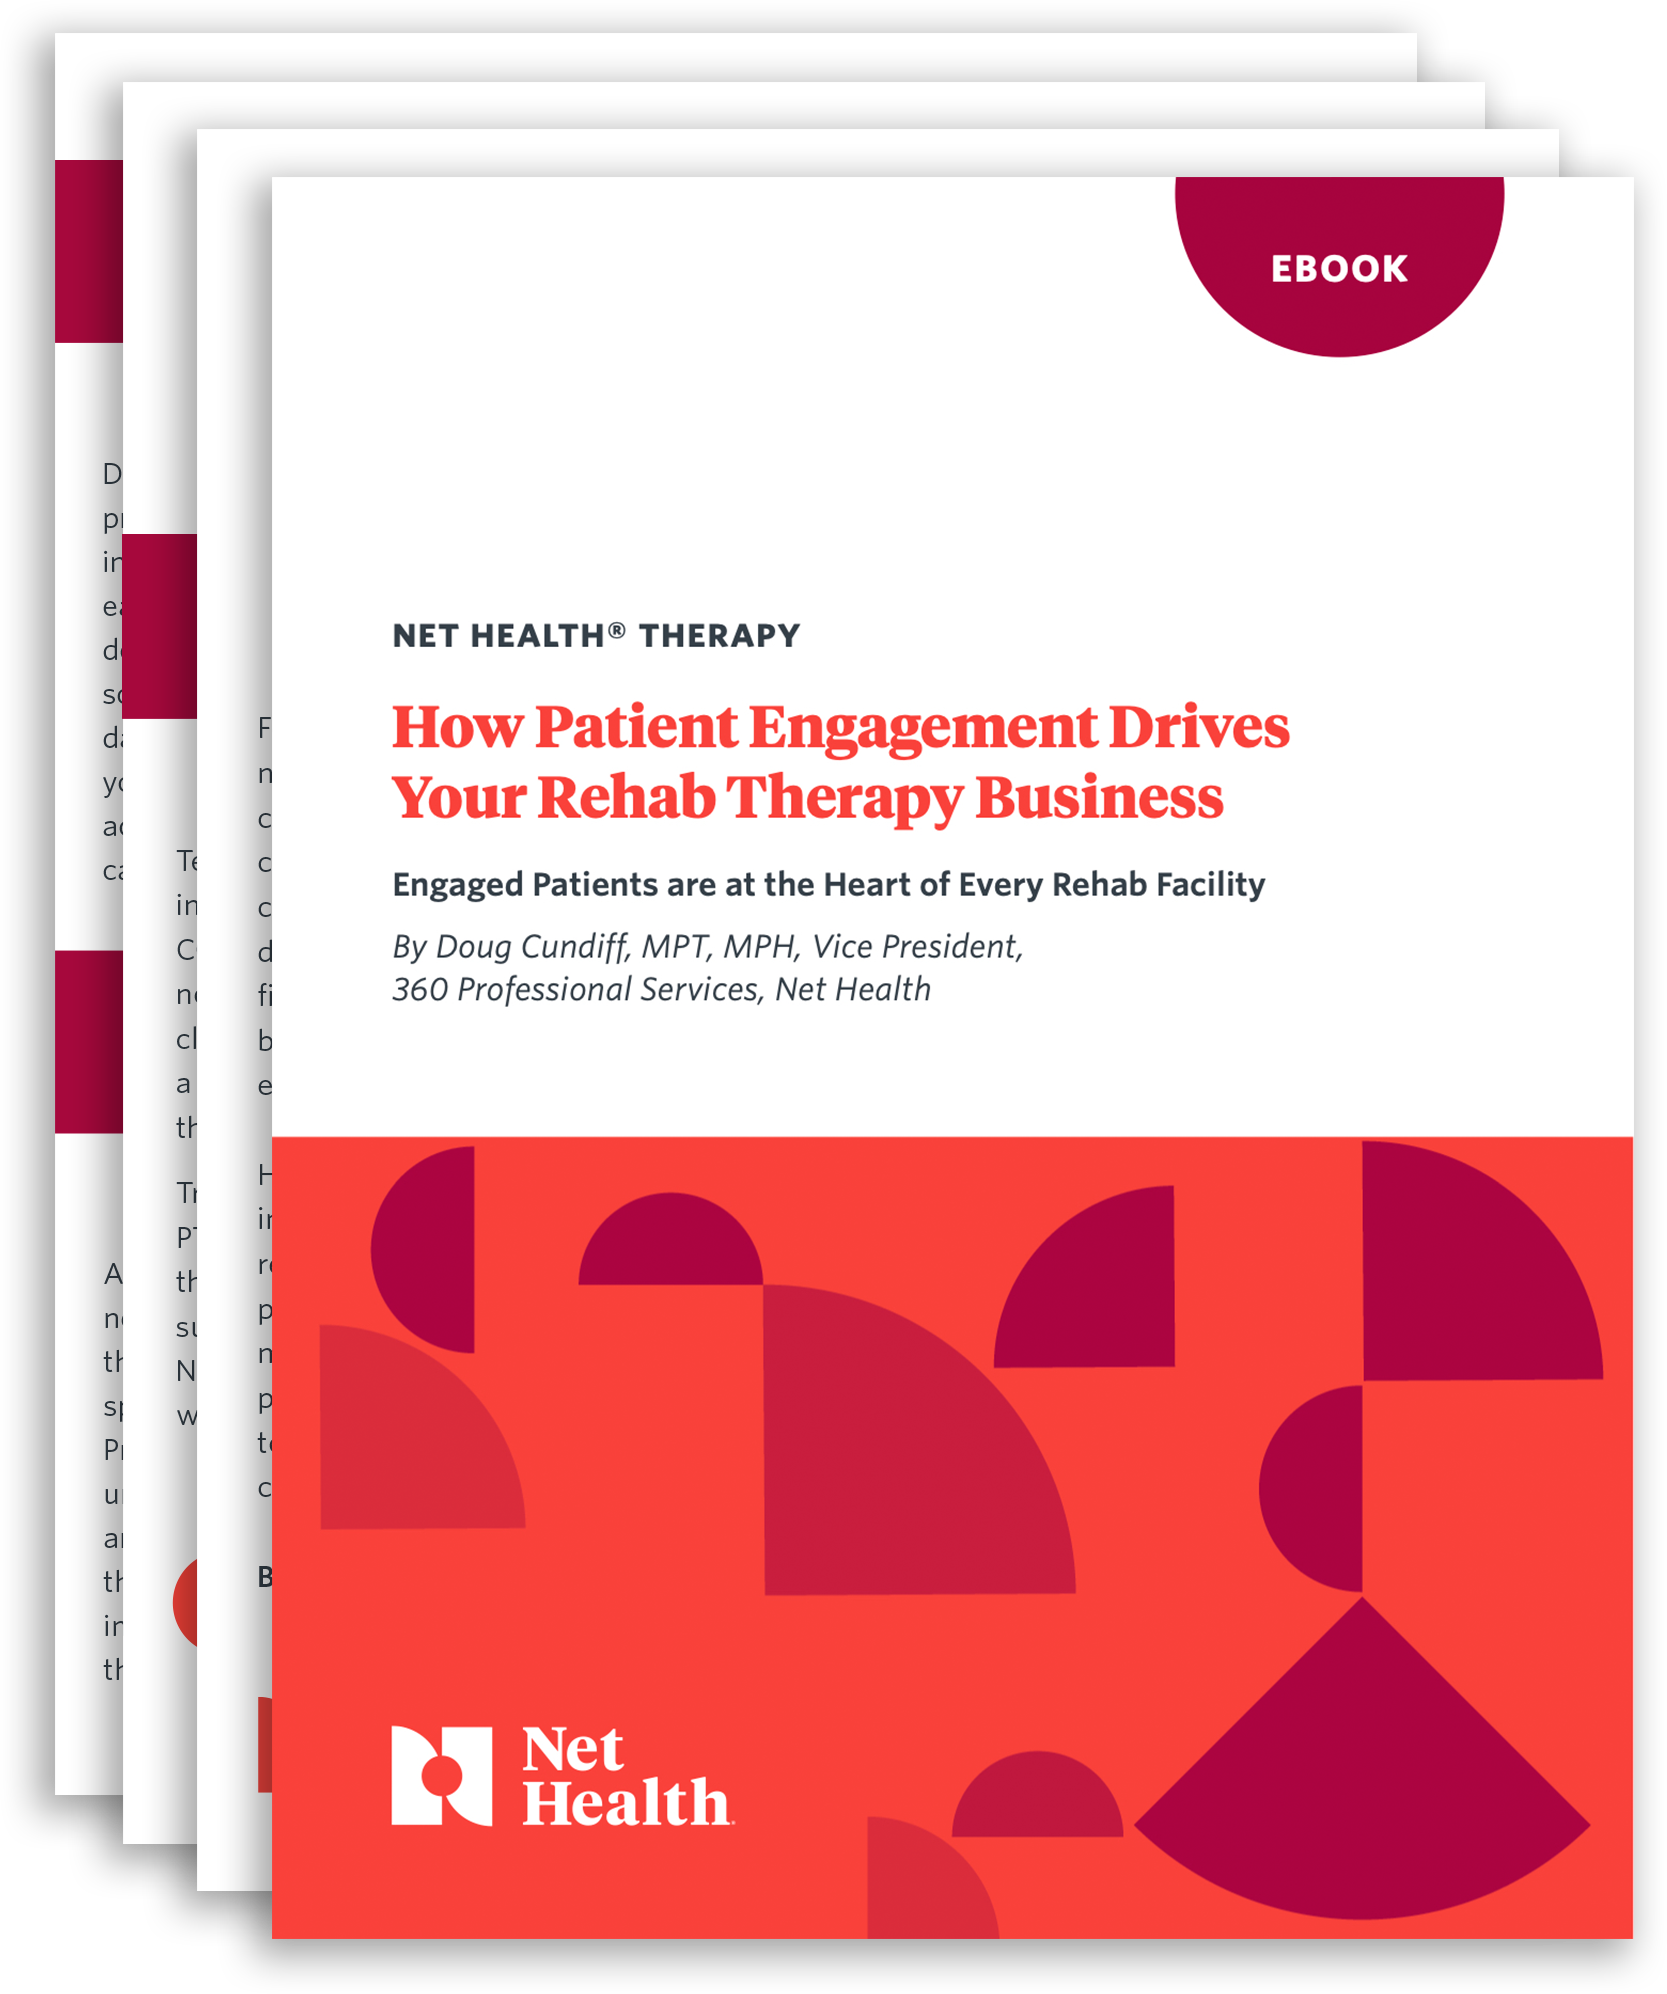 E-Book: How Patient Engagement Drives Your Rehab Therapy Business – Download Now